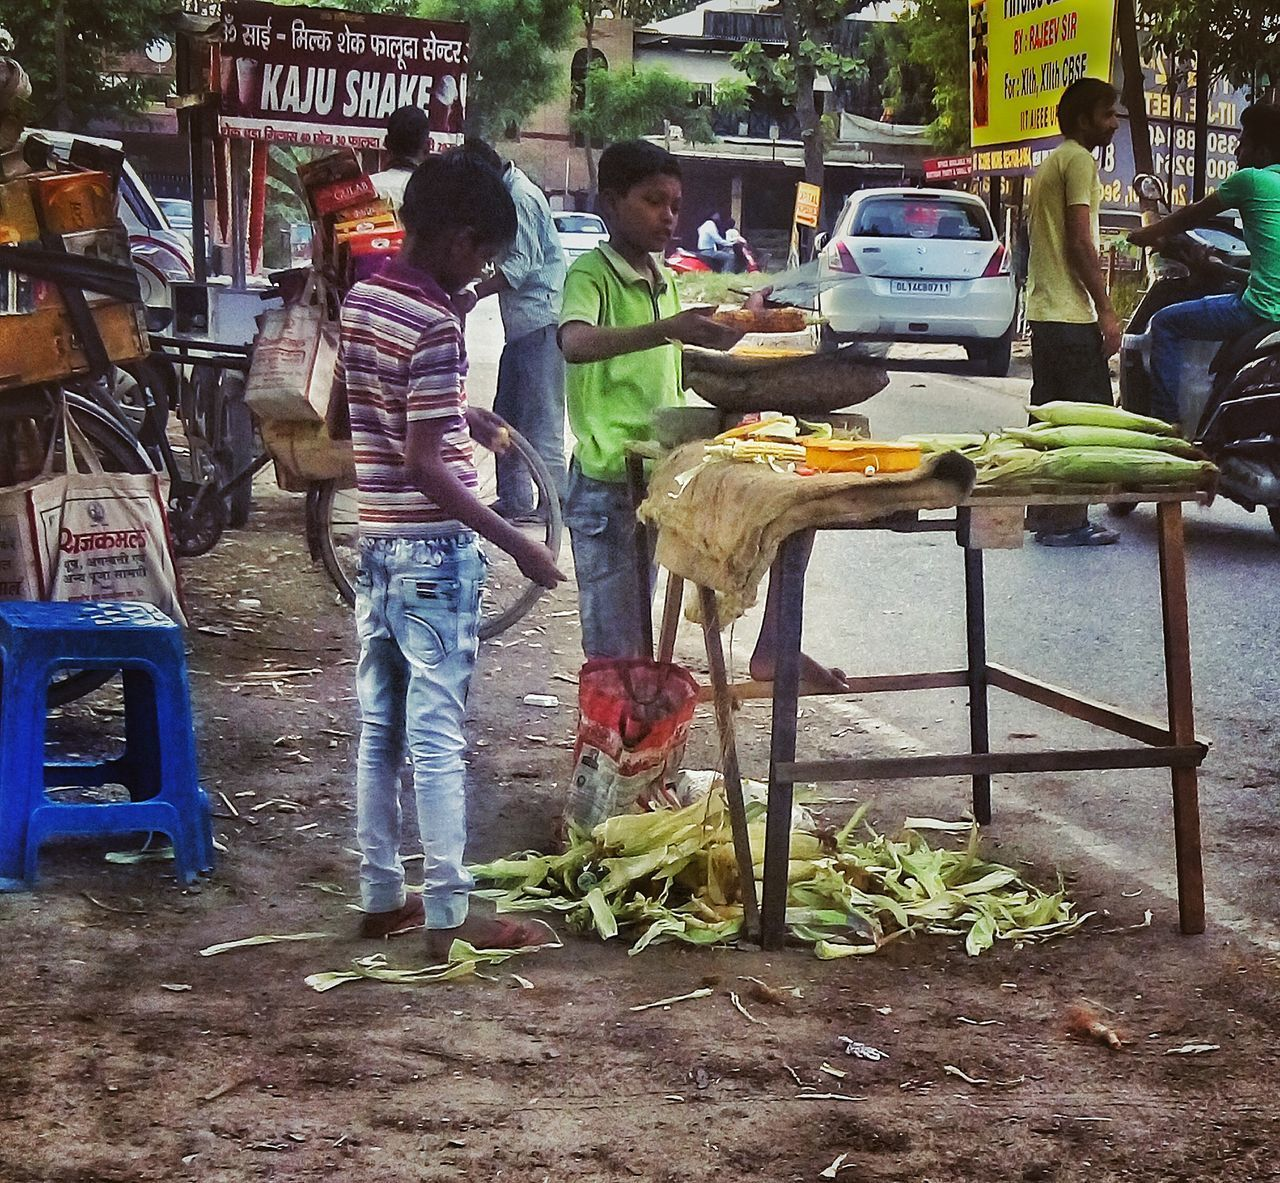 In the age of playing, they are earning. Real People Outdoors Lifestyles Day Market Food Full Length People Adult The Great Outdoors - 2017 EyeEm Awards India Exolore Your City The Portraitist - 2017 EyeEm Awards Multi Colored Live For The Story The Street Photographer - 2017 EyeEm Awards Place Of Heart EyeEmNewHere